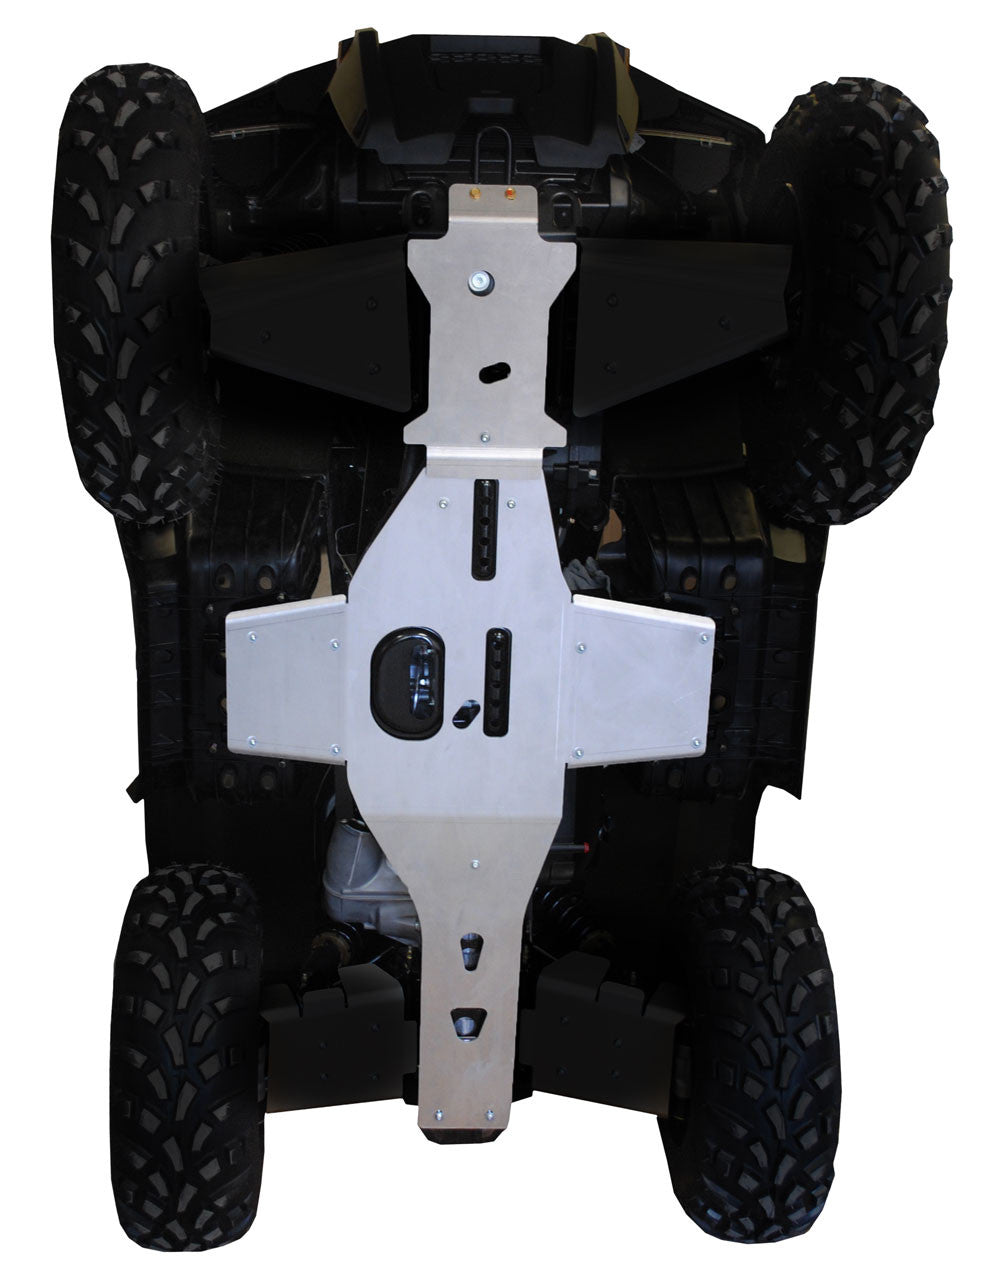 2-Piece Full Frame Skid Plate Set, Polaris Sportsman 700